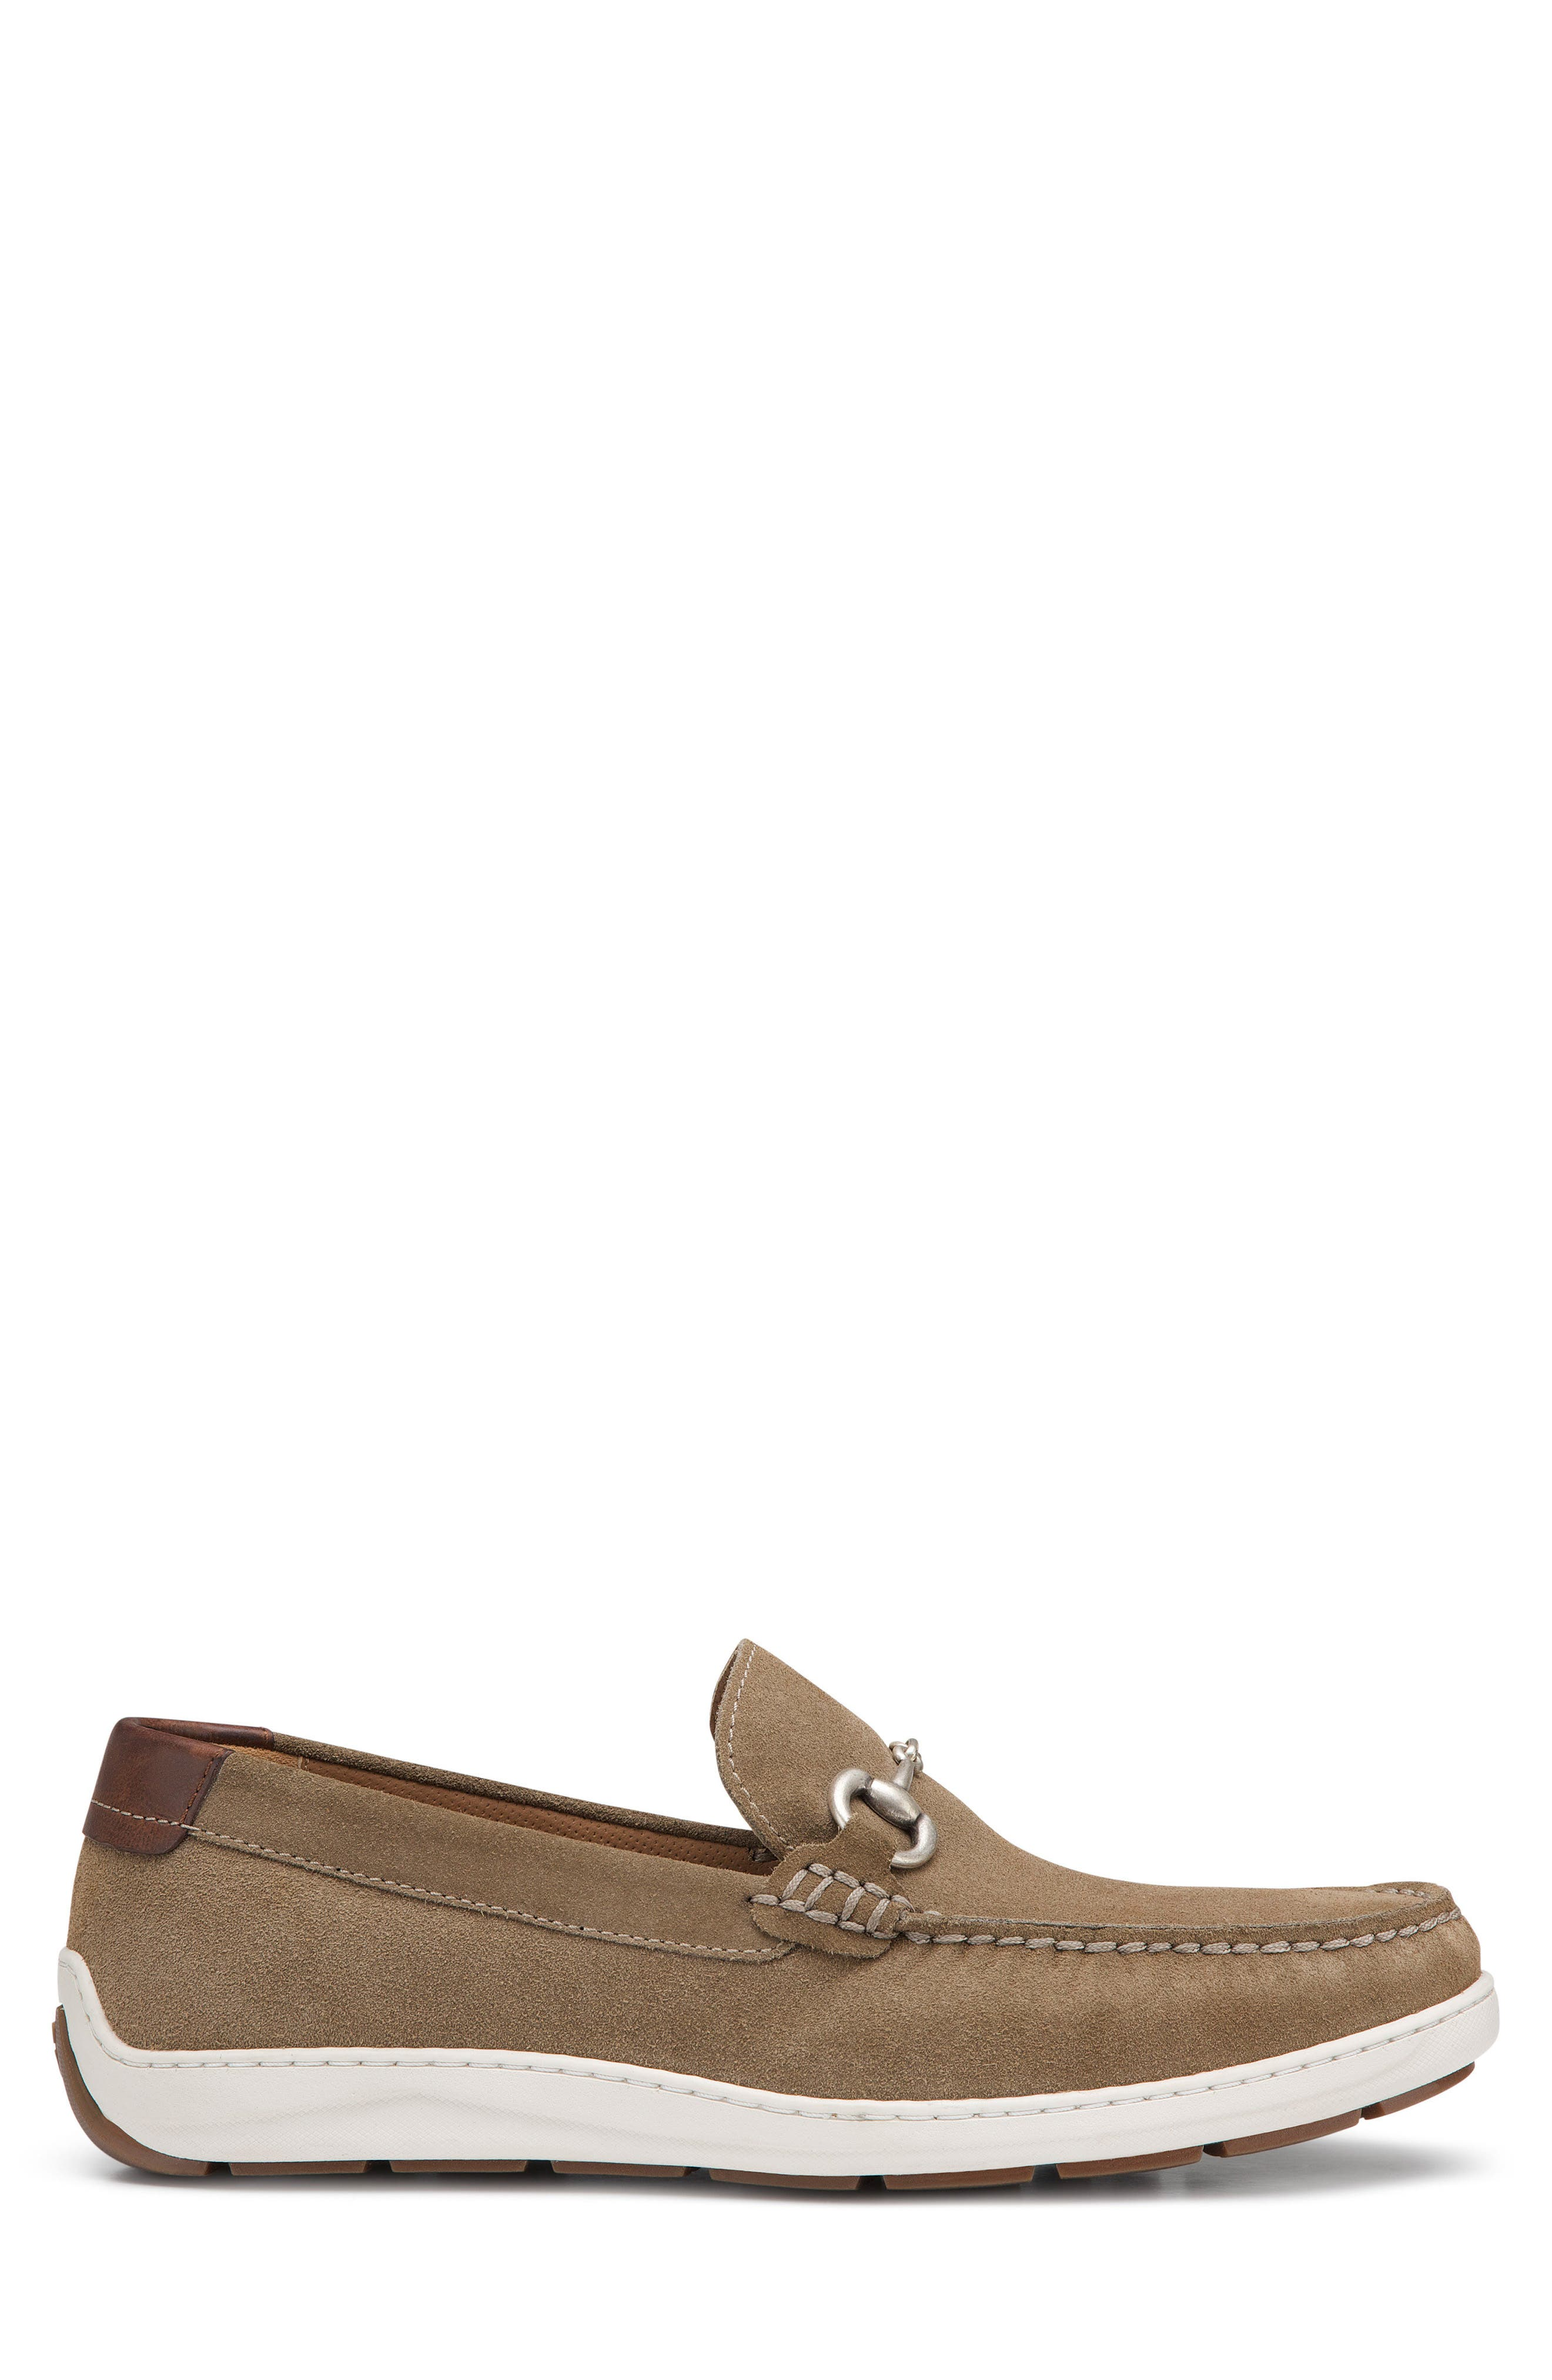 Stalworth Bit Loafer,                             Alternate thumbnail 5, color,                             Taupe Leather